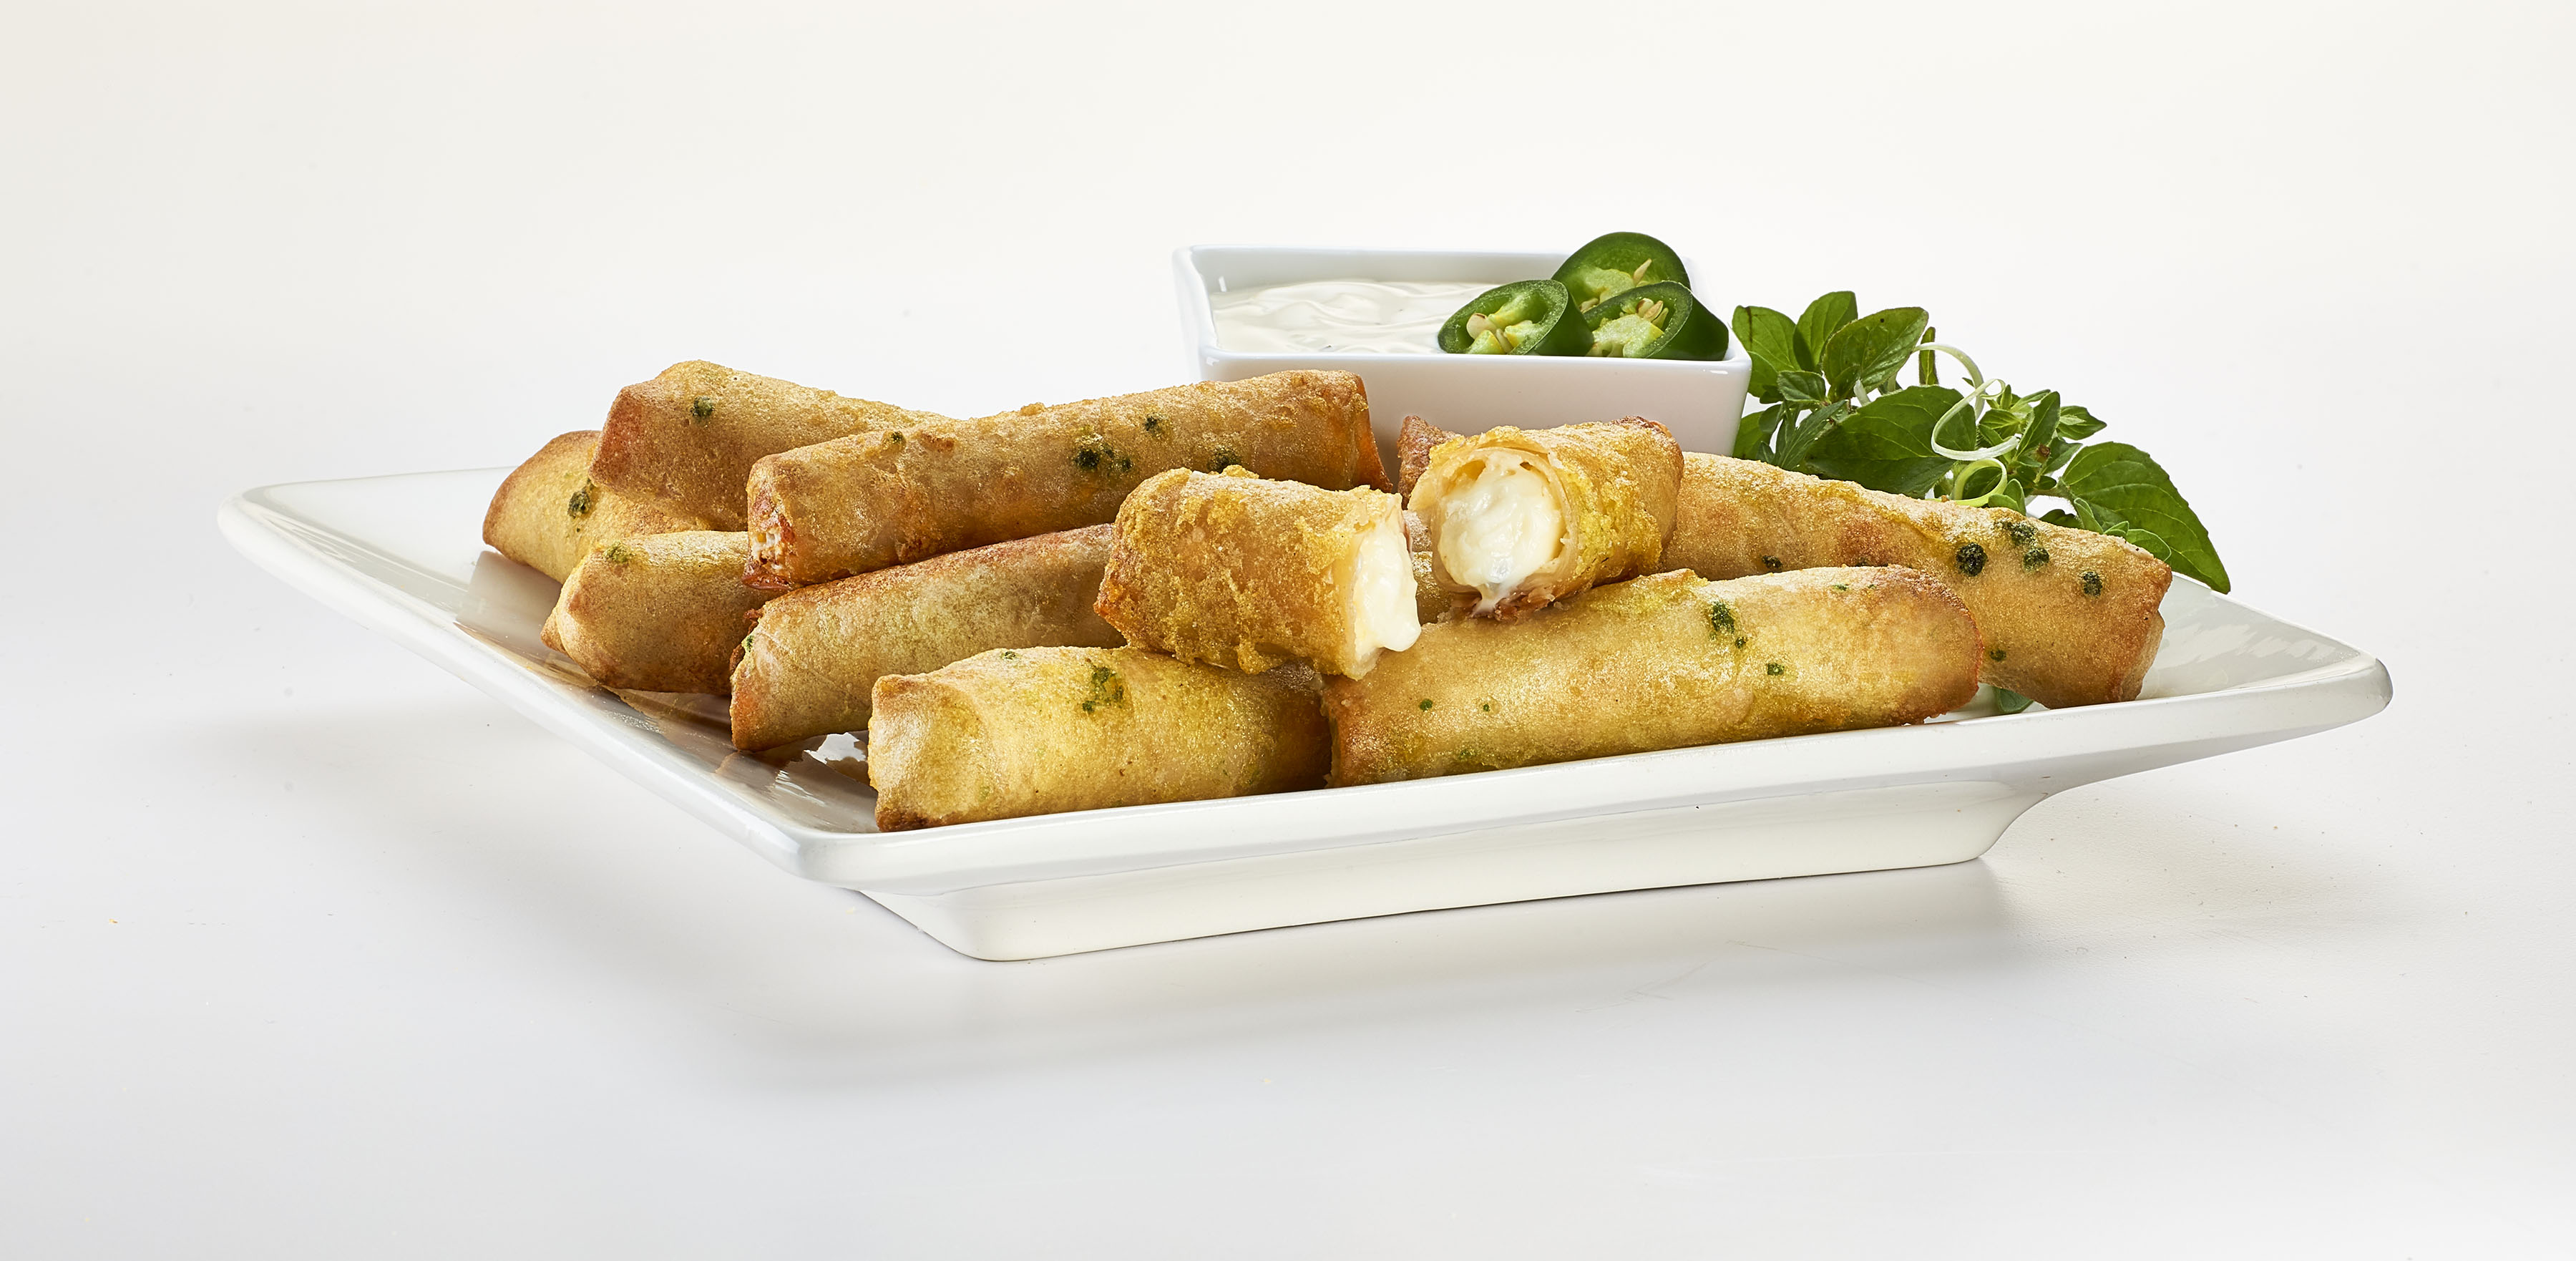 Breaded Jalapeno Cheese Sticks